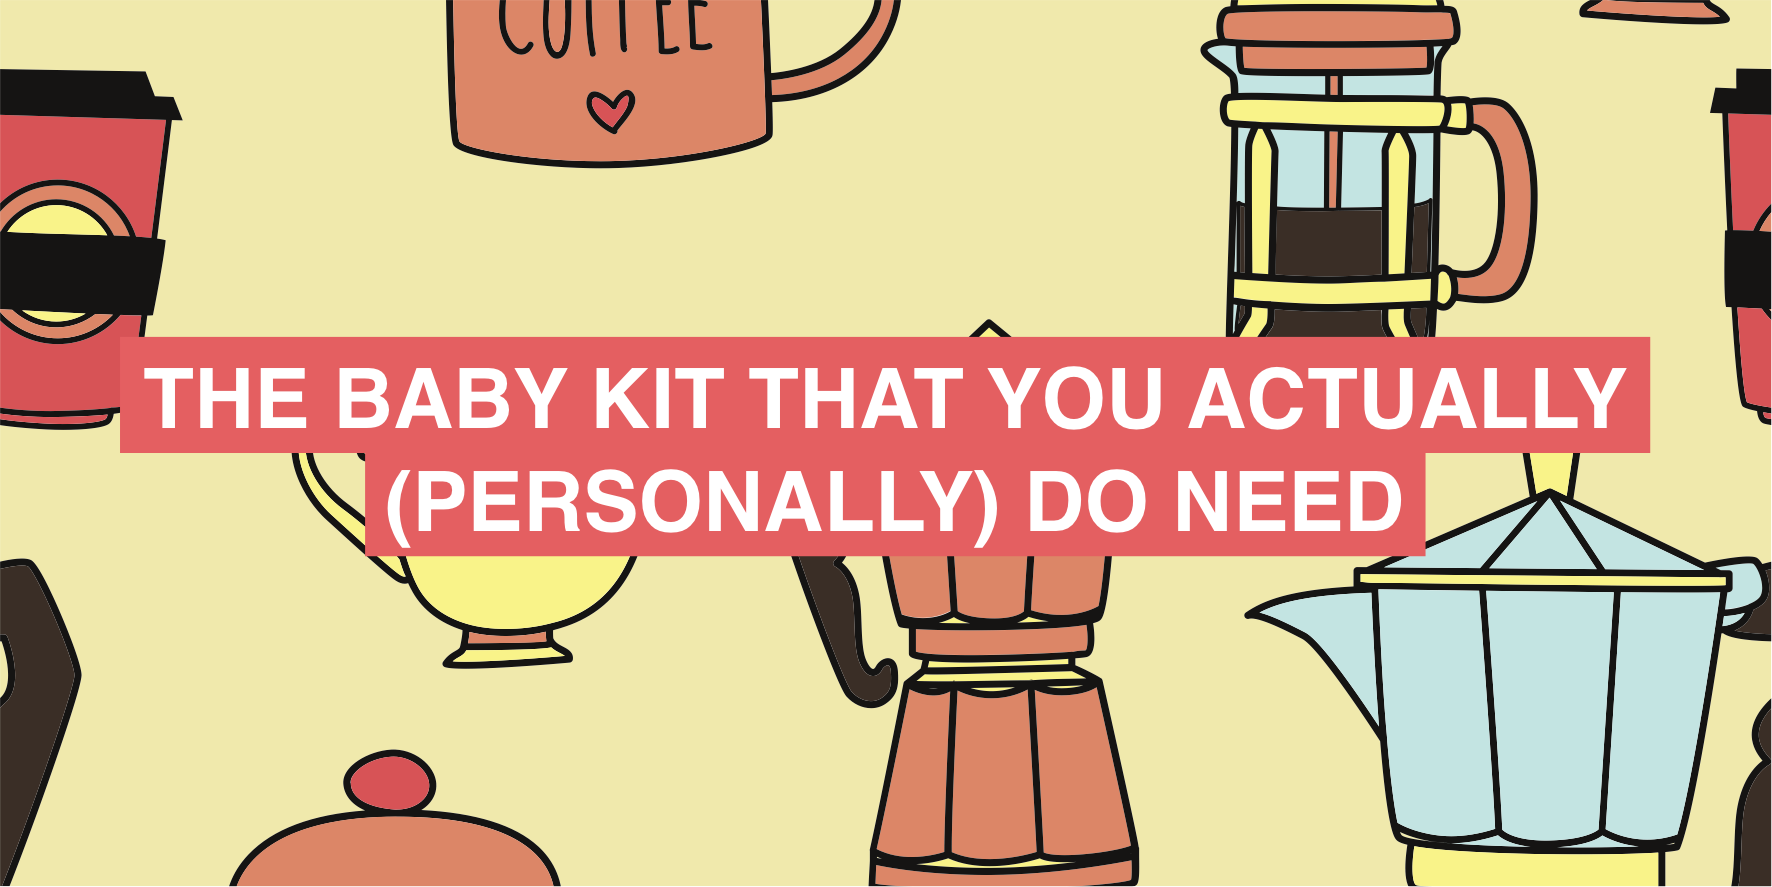 The baby kit that YOU actually do need